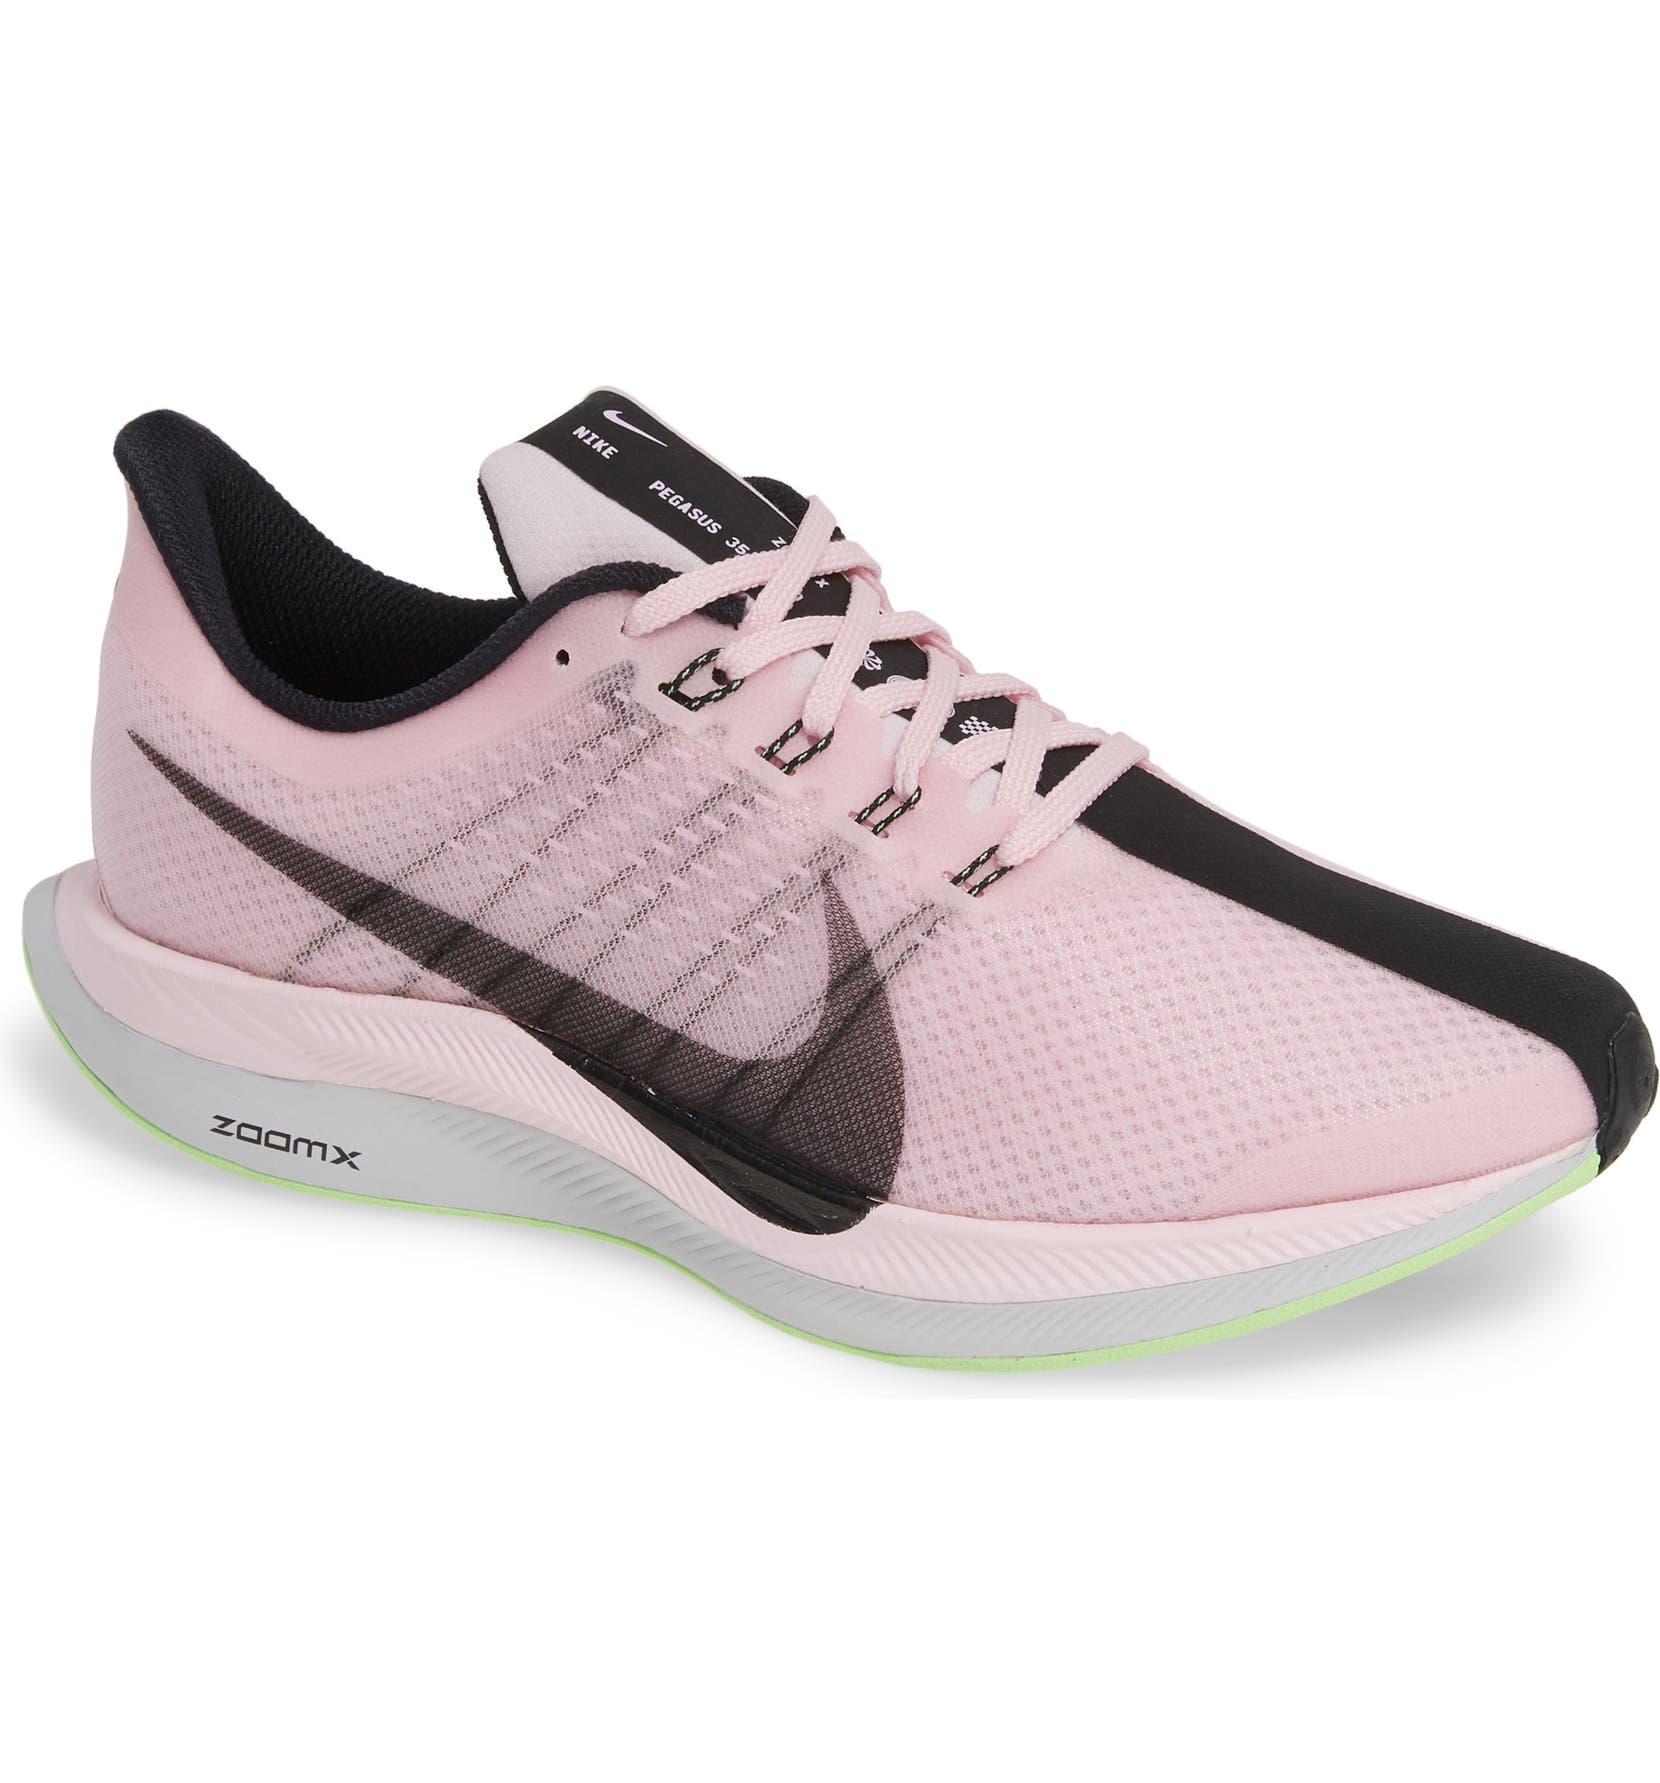 new product 0cdfc 11863 Nike Air Zoom Pegasus 35 Turbo 2 2019 Running Shoes Gray  Buy Online at  Best Price on Snapdeal